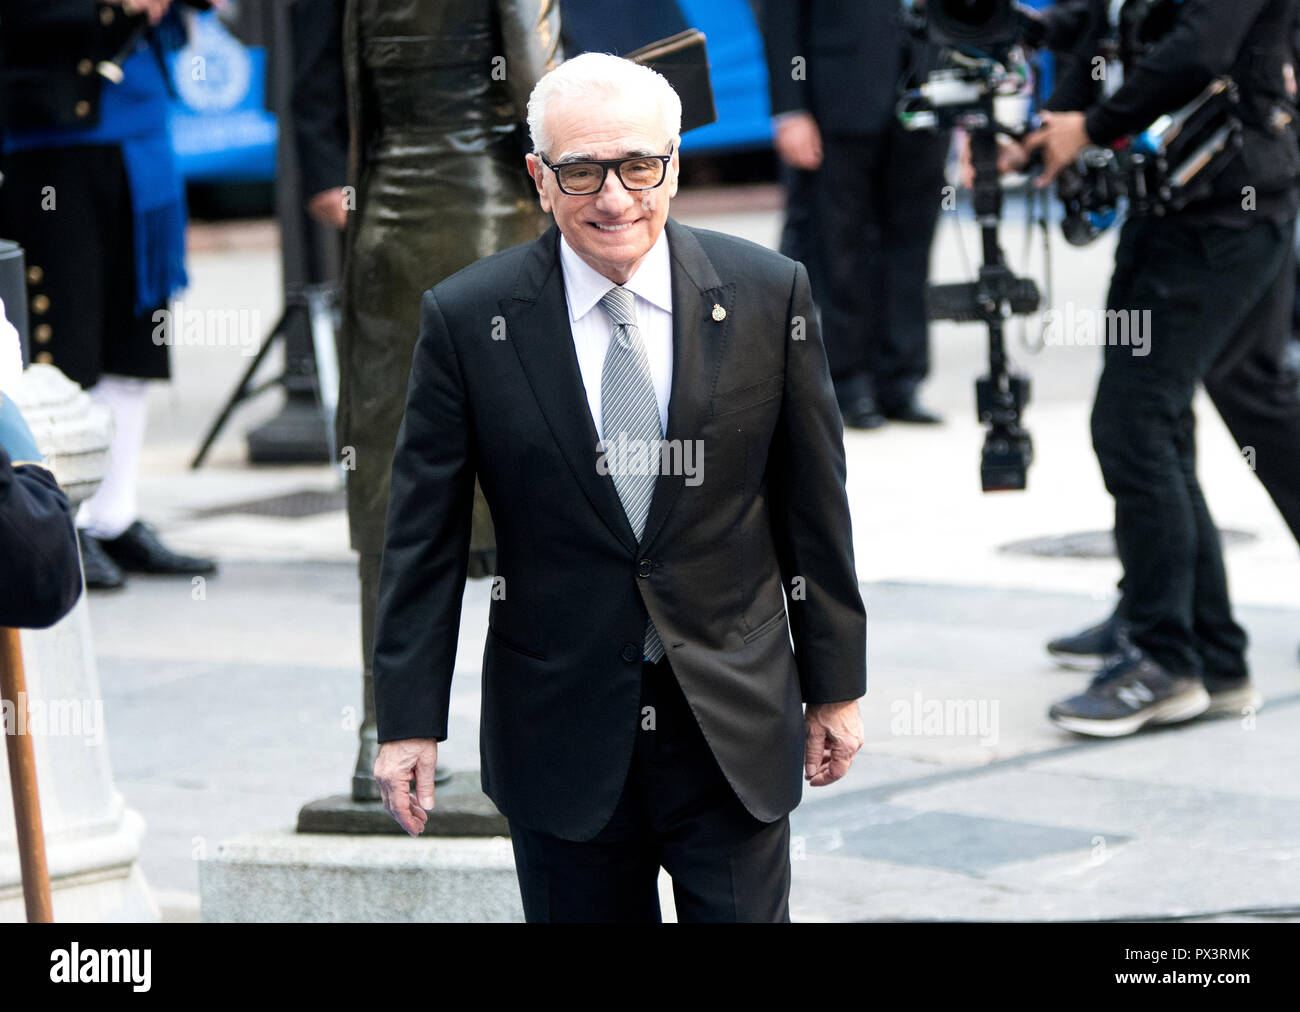 Oviedo, Spain. 19th October, 2018. American director Martin Scorsese arrives to the ceremony of Princess of Asturias Awards at Campoamor Theatre on October 19, 2018 in Oviedo, Spain. Scorsese obtain the Princess of Asturias Award for Arts 2018 for for his career as a director, with films like 'Taxi Driver', 'Goodfellas', 'Gangs of New York', 'The Departed' and 'The Wolf of Wall Street'. ©David Gato/Alamy Live News - Stock Image